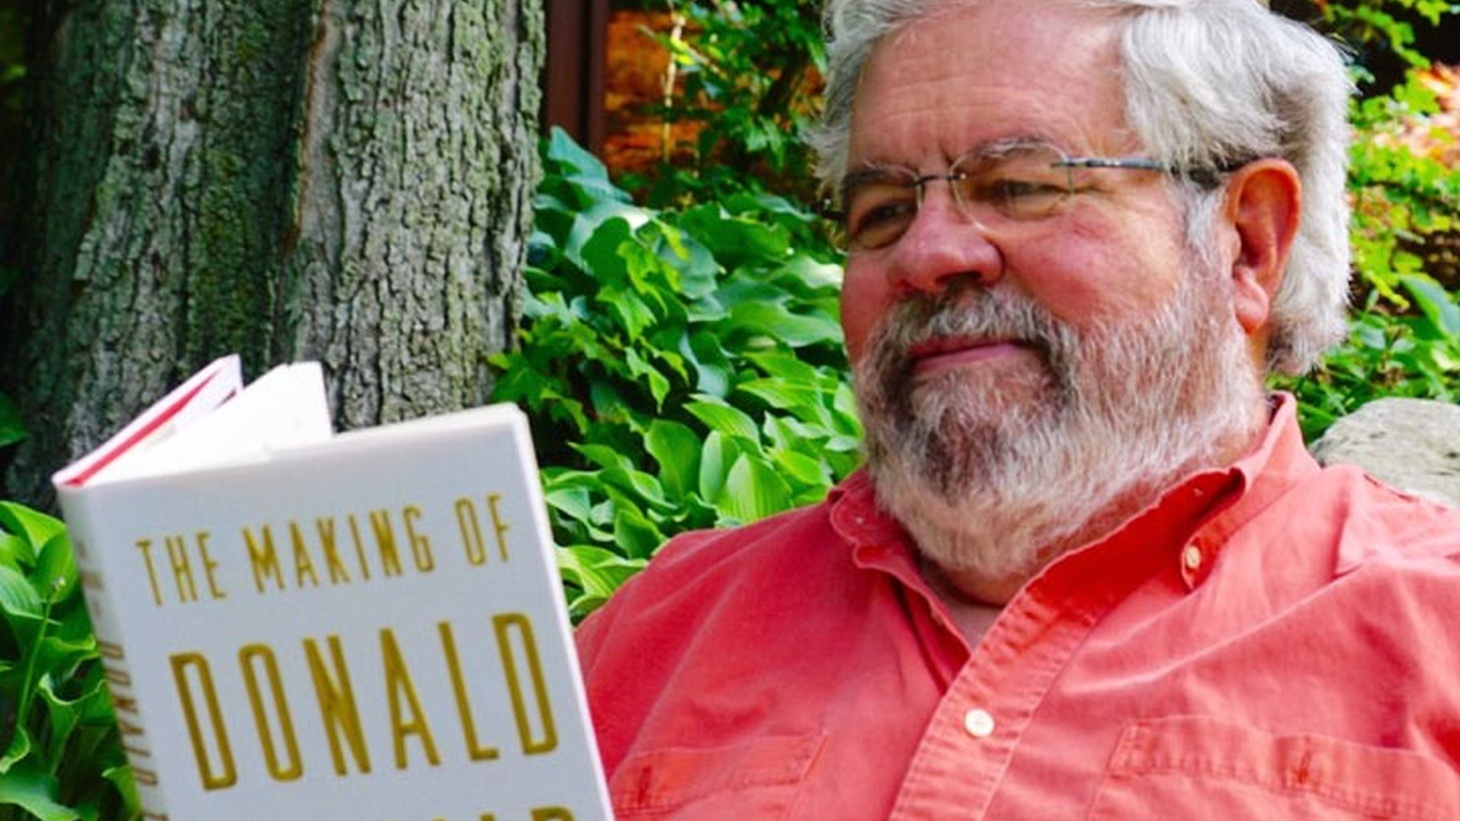 Robert Scheer sits down with award-winning journalist and author David Cay Johnston to discuss the GOP presidential candidate.